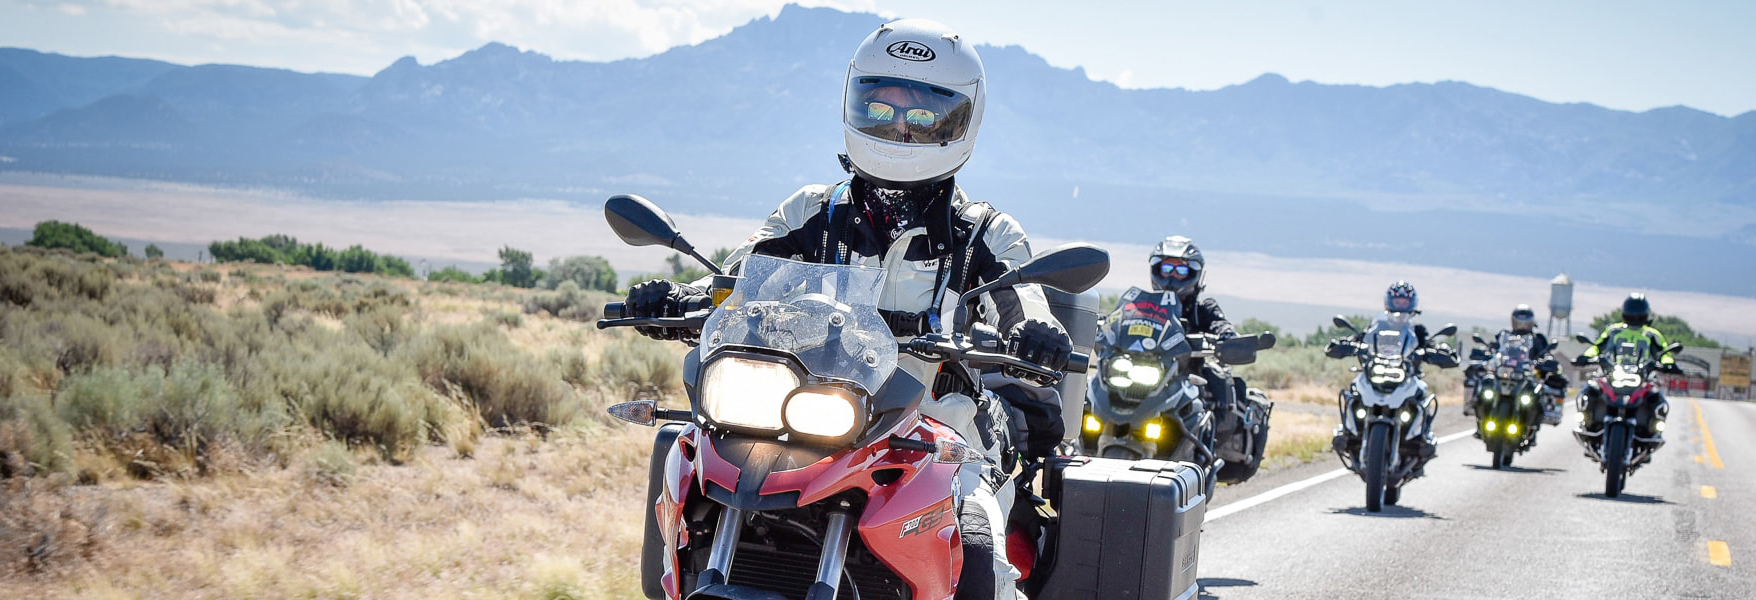 all-female motorcycle rides